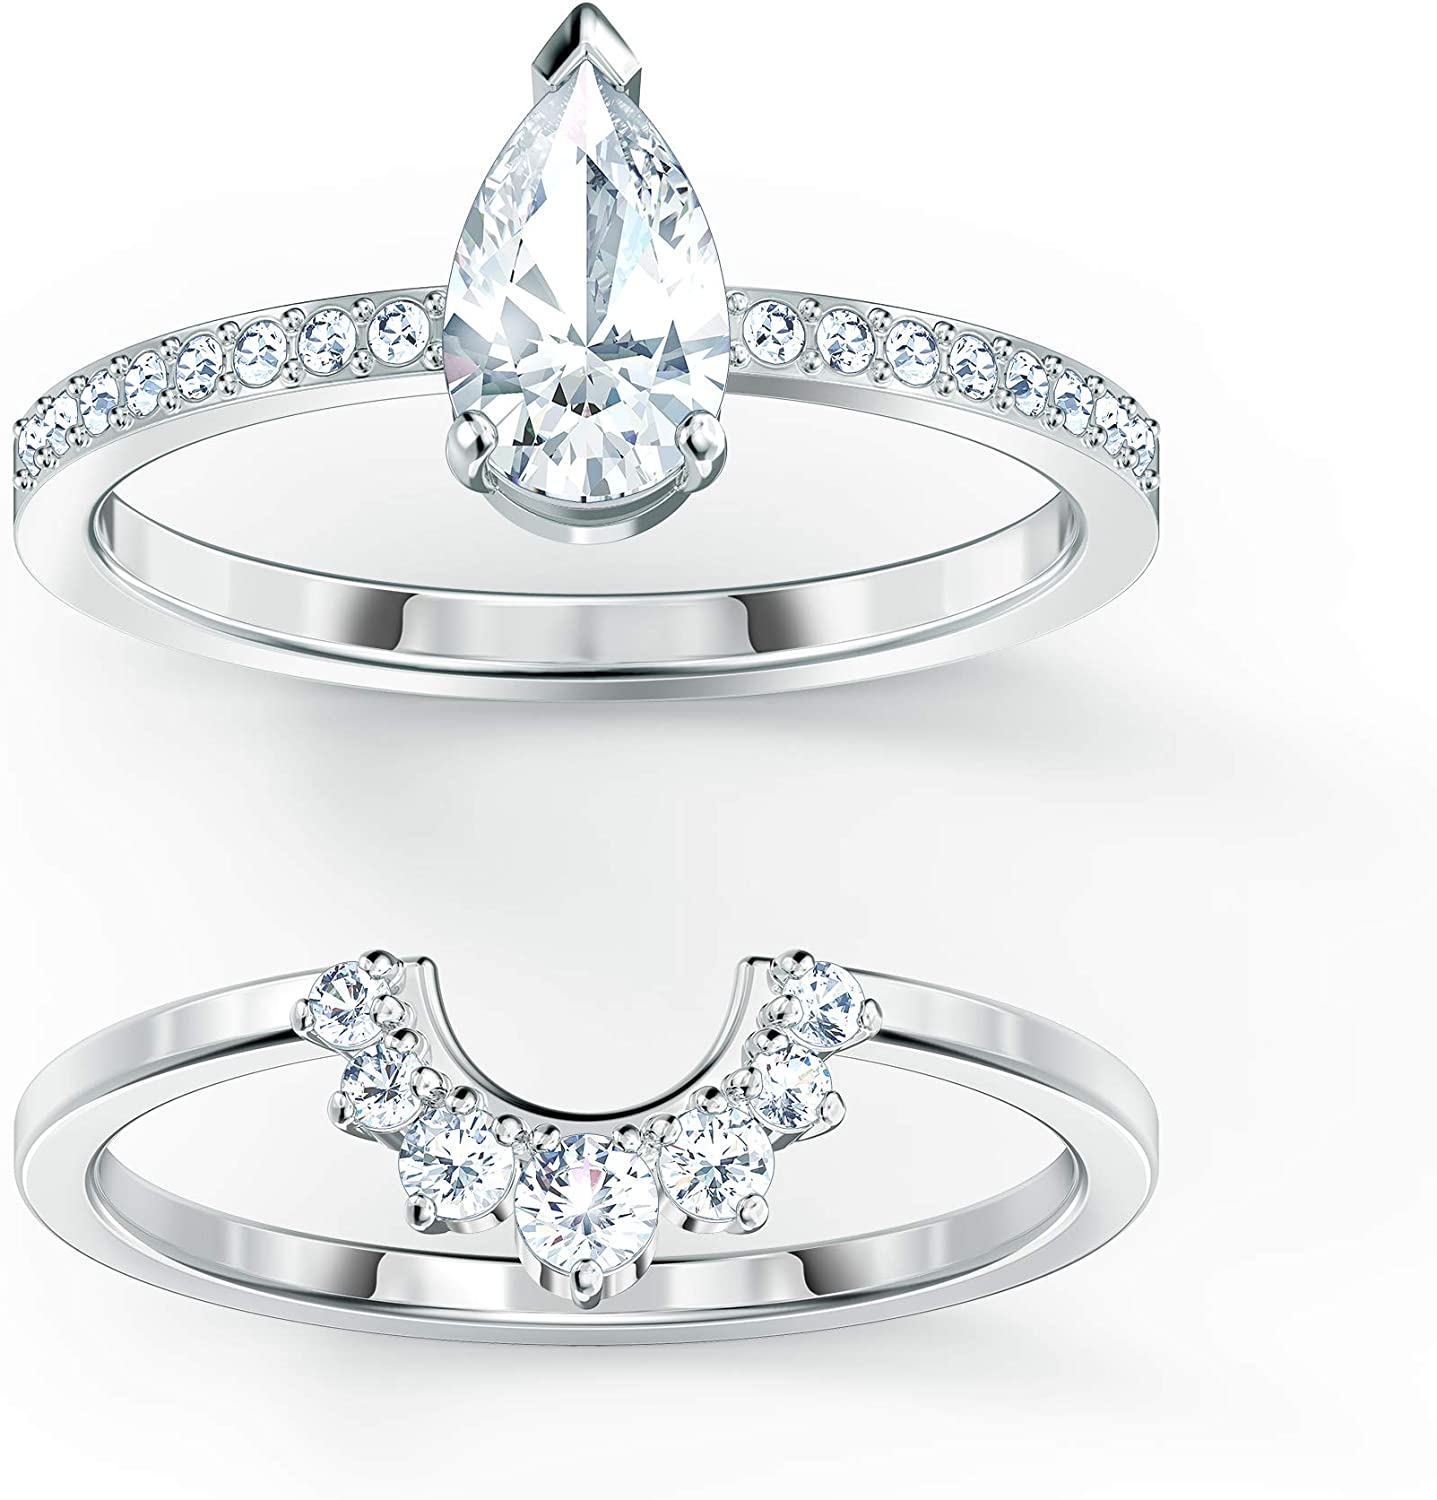 Attract Pear Ring Set Rhodium Plated White